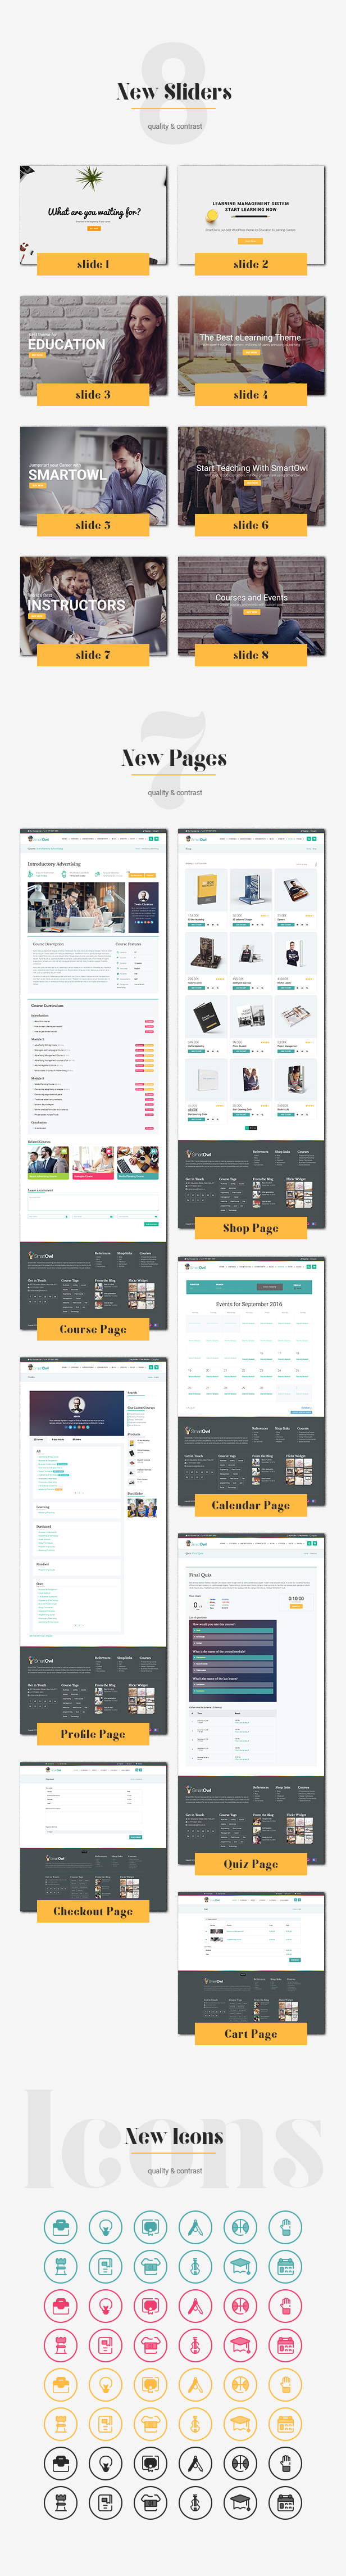 SmartOWL - Education Theme & Learning Management System for WordPress - 3